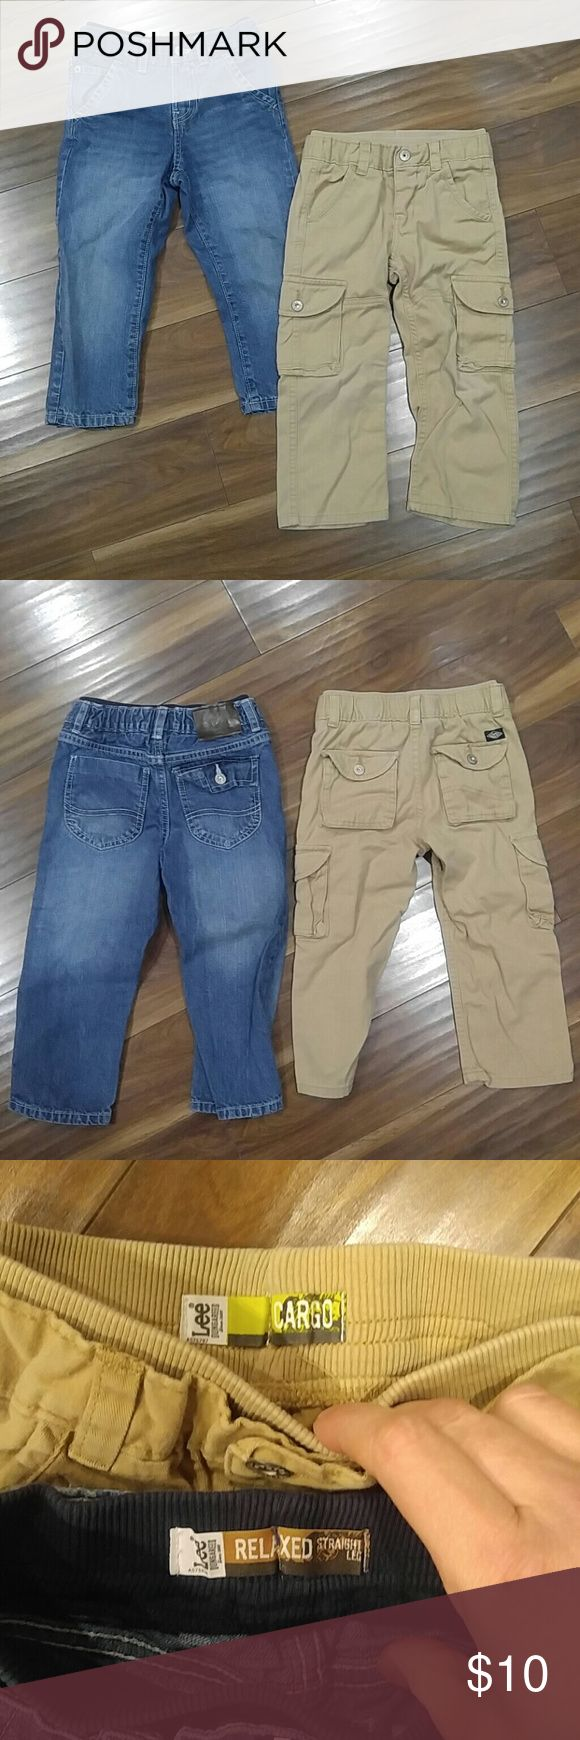 Lee Dungarees 3T One pair of jean strait leg Dungarees with comfort waist band and one pair khaki cargo Dungarees with comfort band. Khaki have slight wear on pockets at knee. Otherwise is great shape. Both size 3T Lee Bottoms Jeans